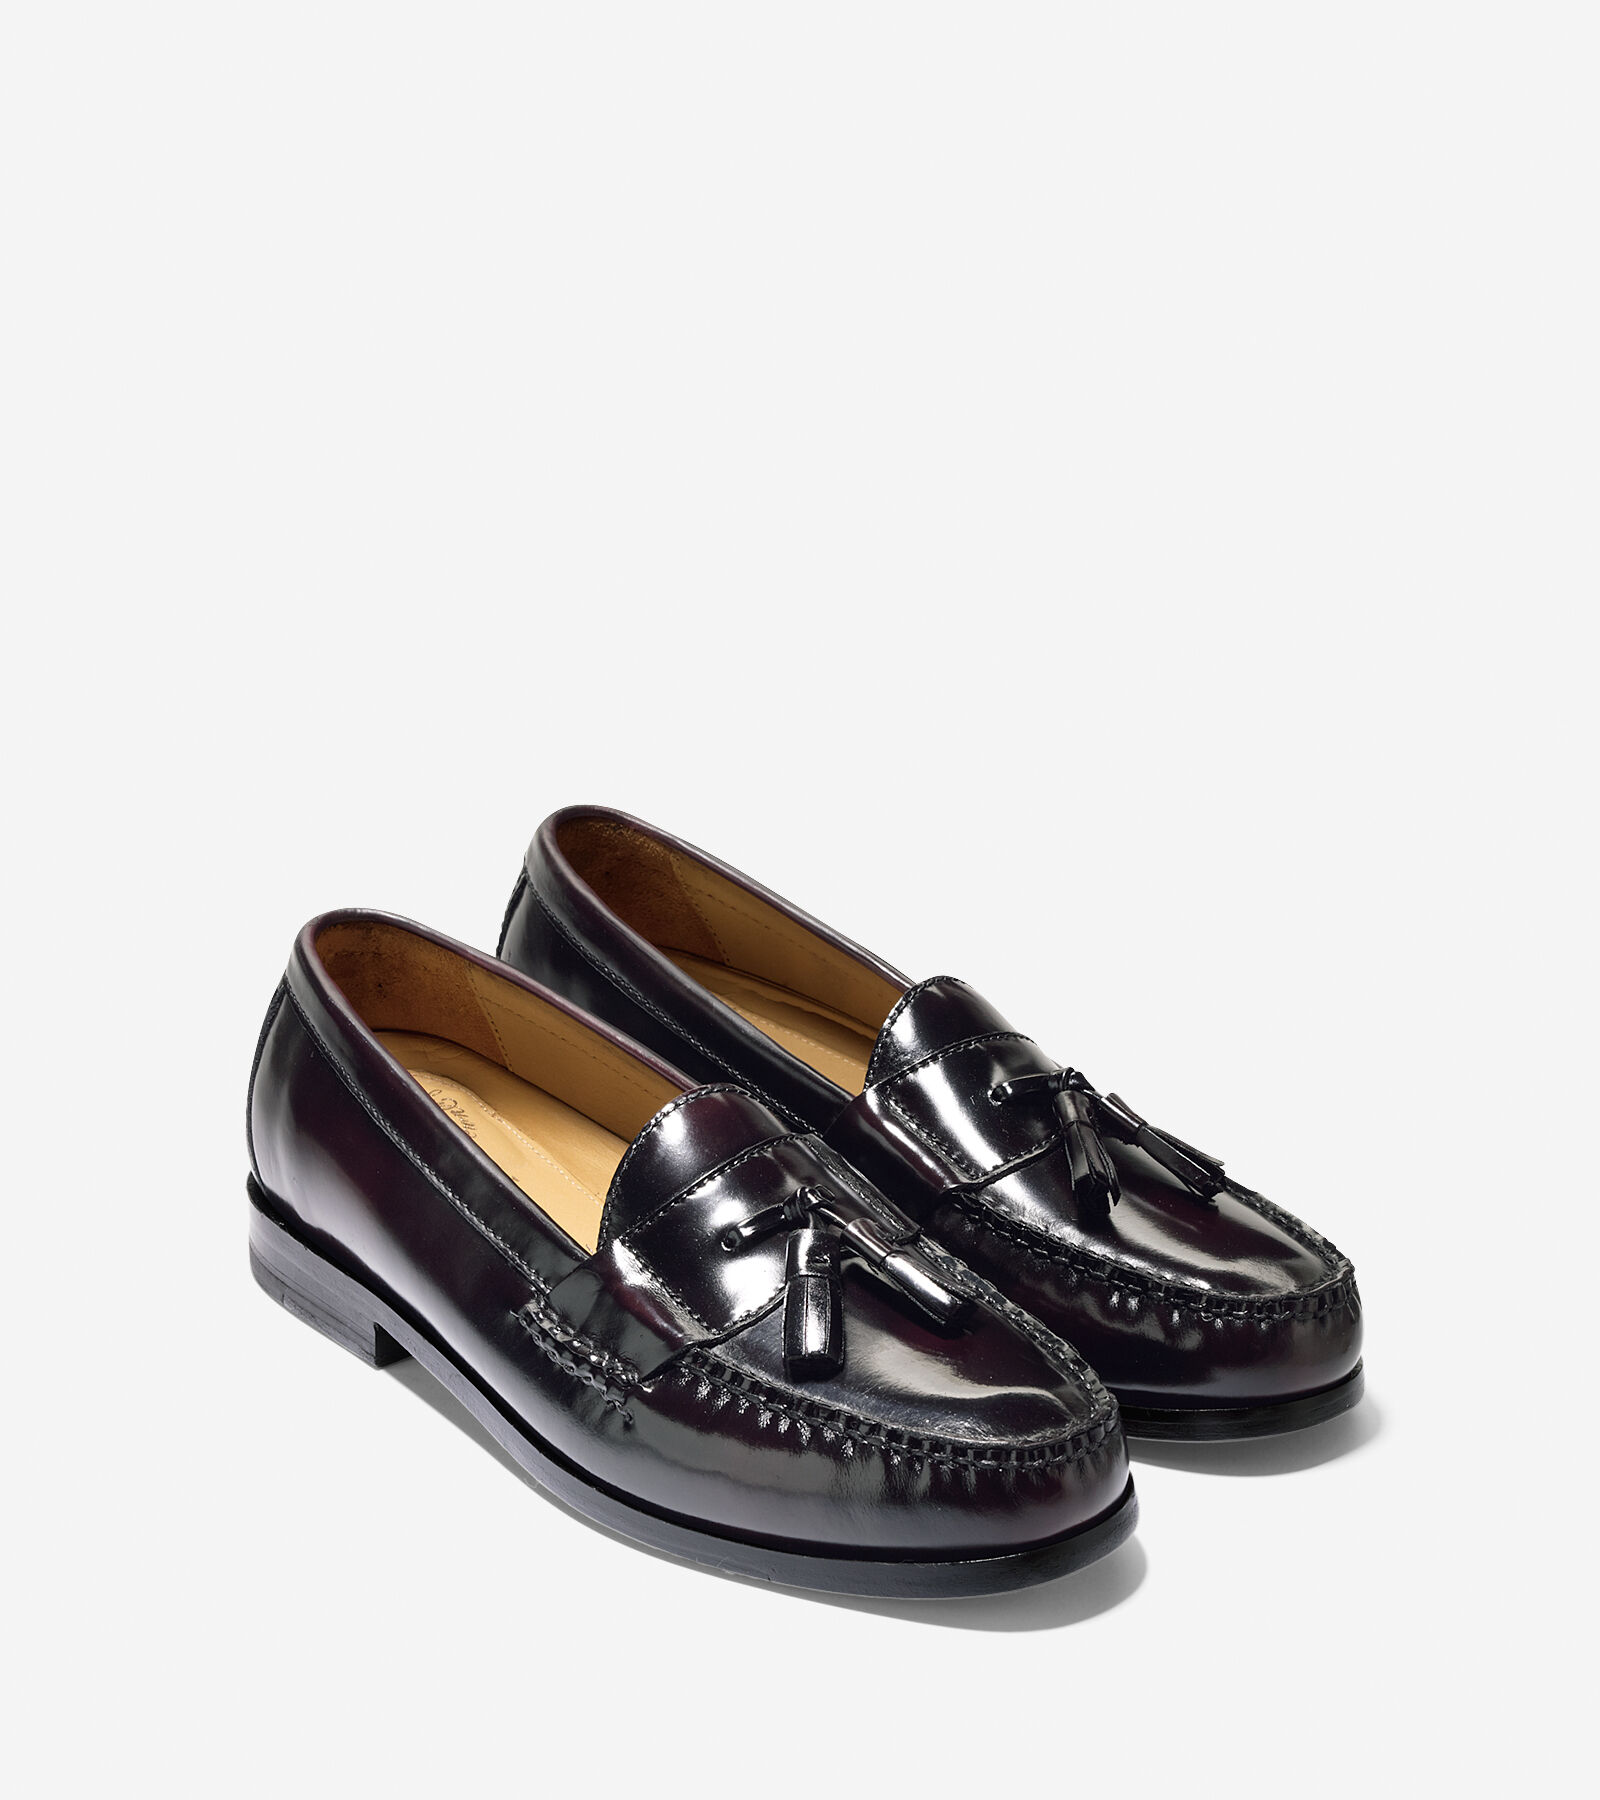 Pinch Grand Tassel Cole Haan peQuAWxe